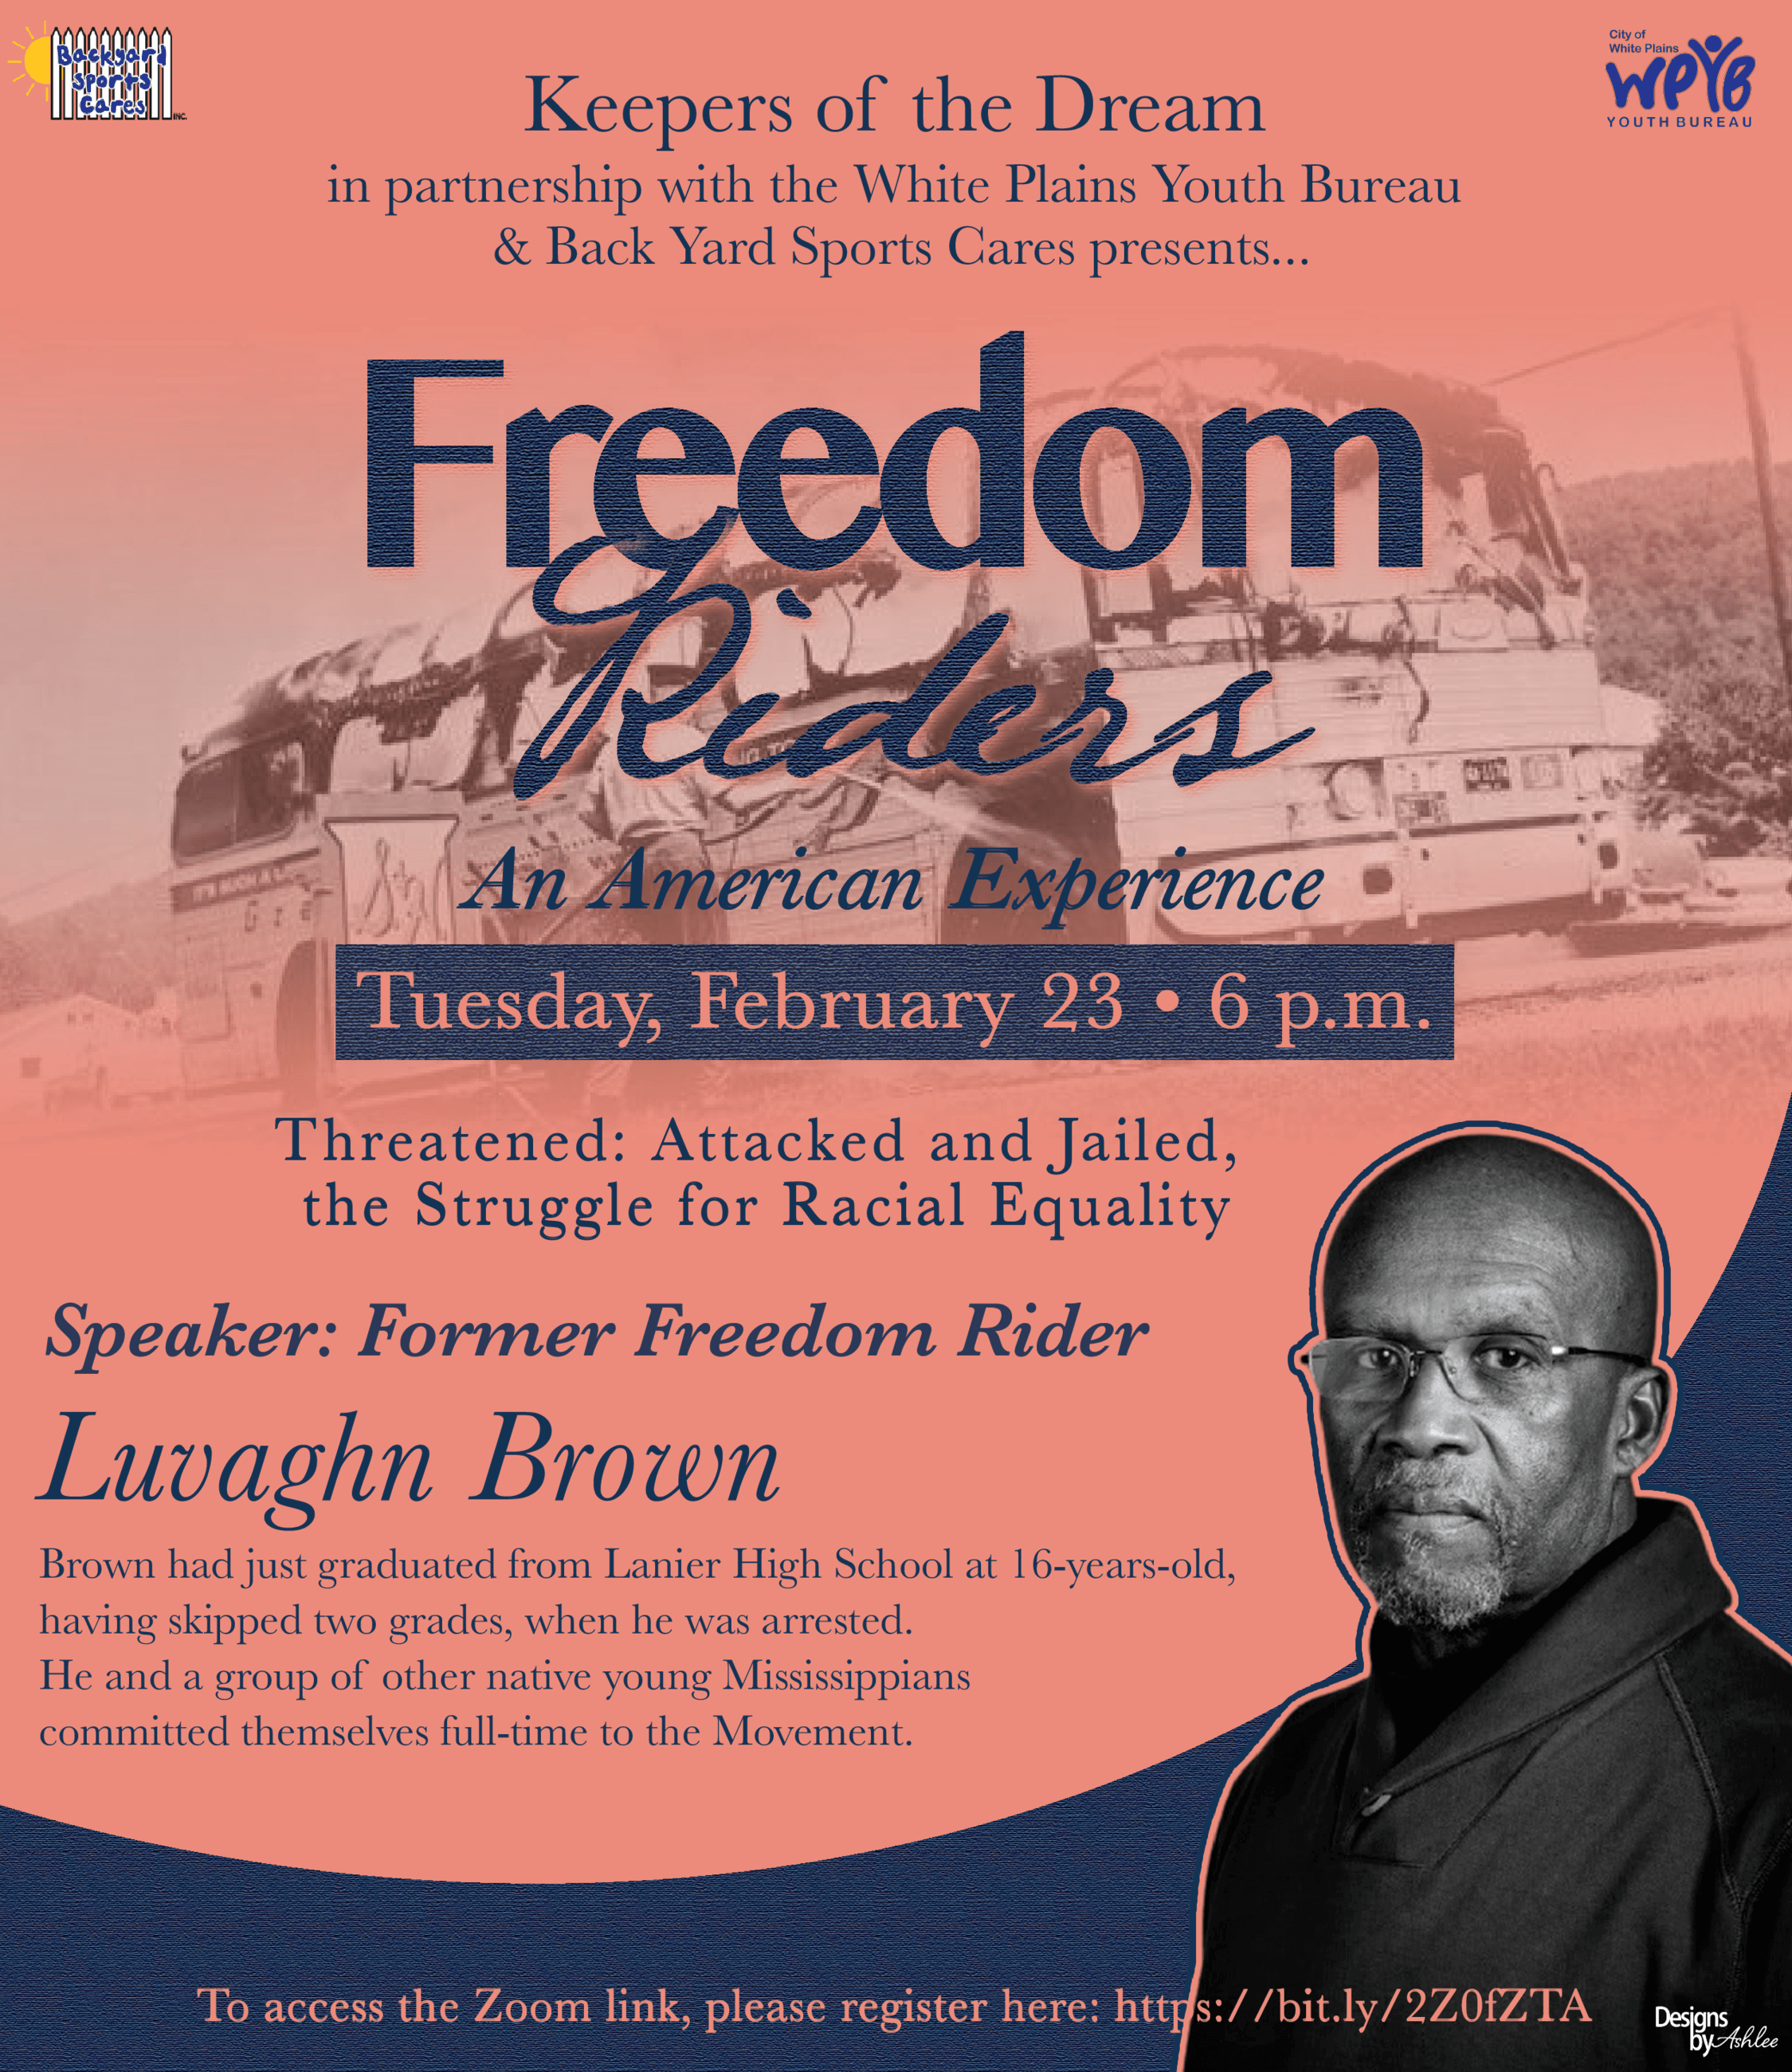 2021 Freedom Riders event February 23rd